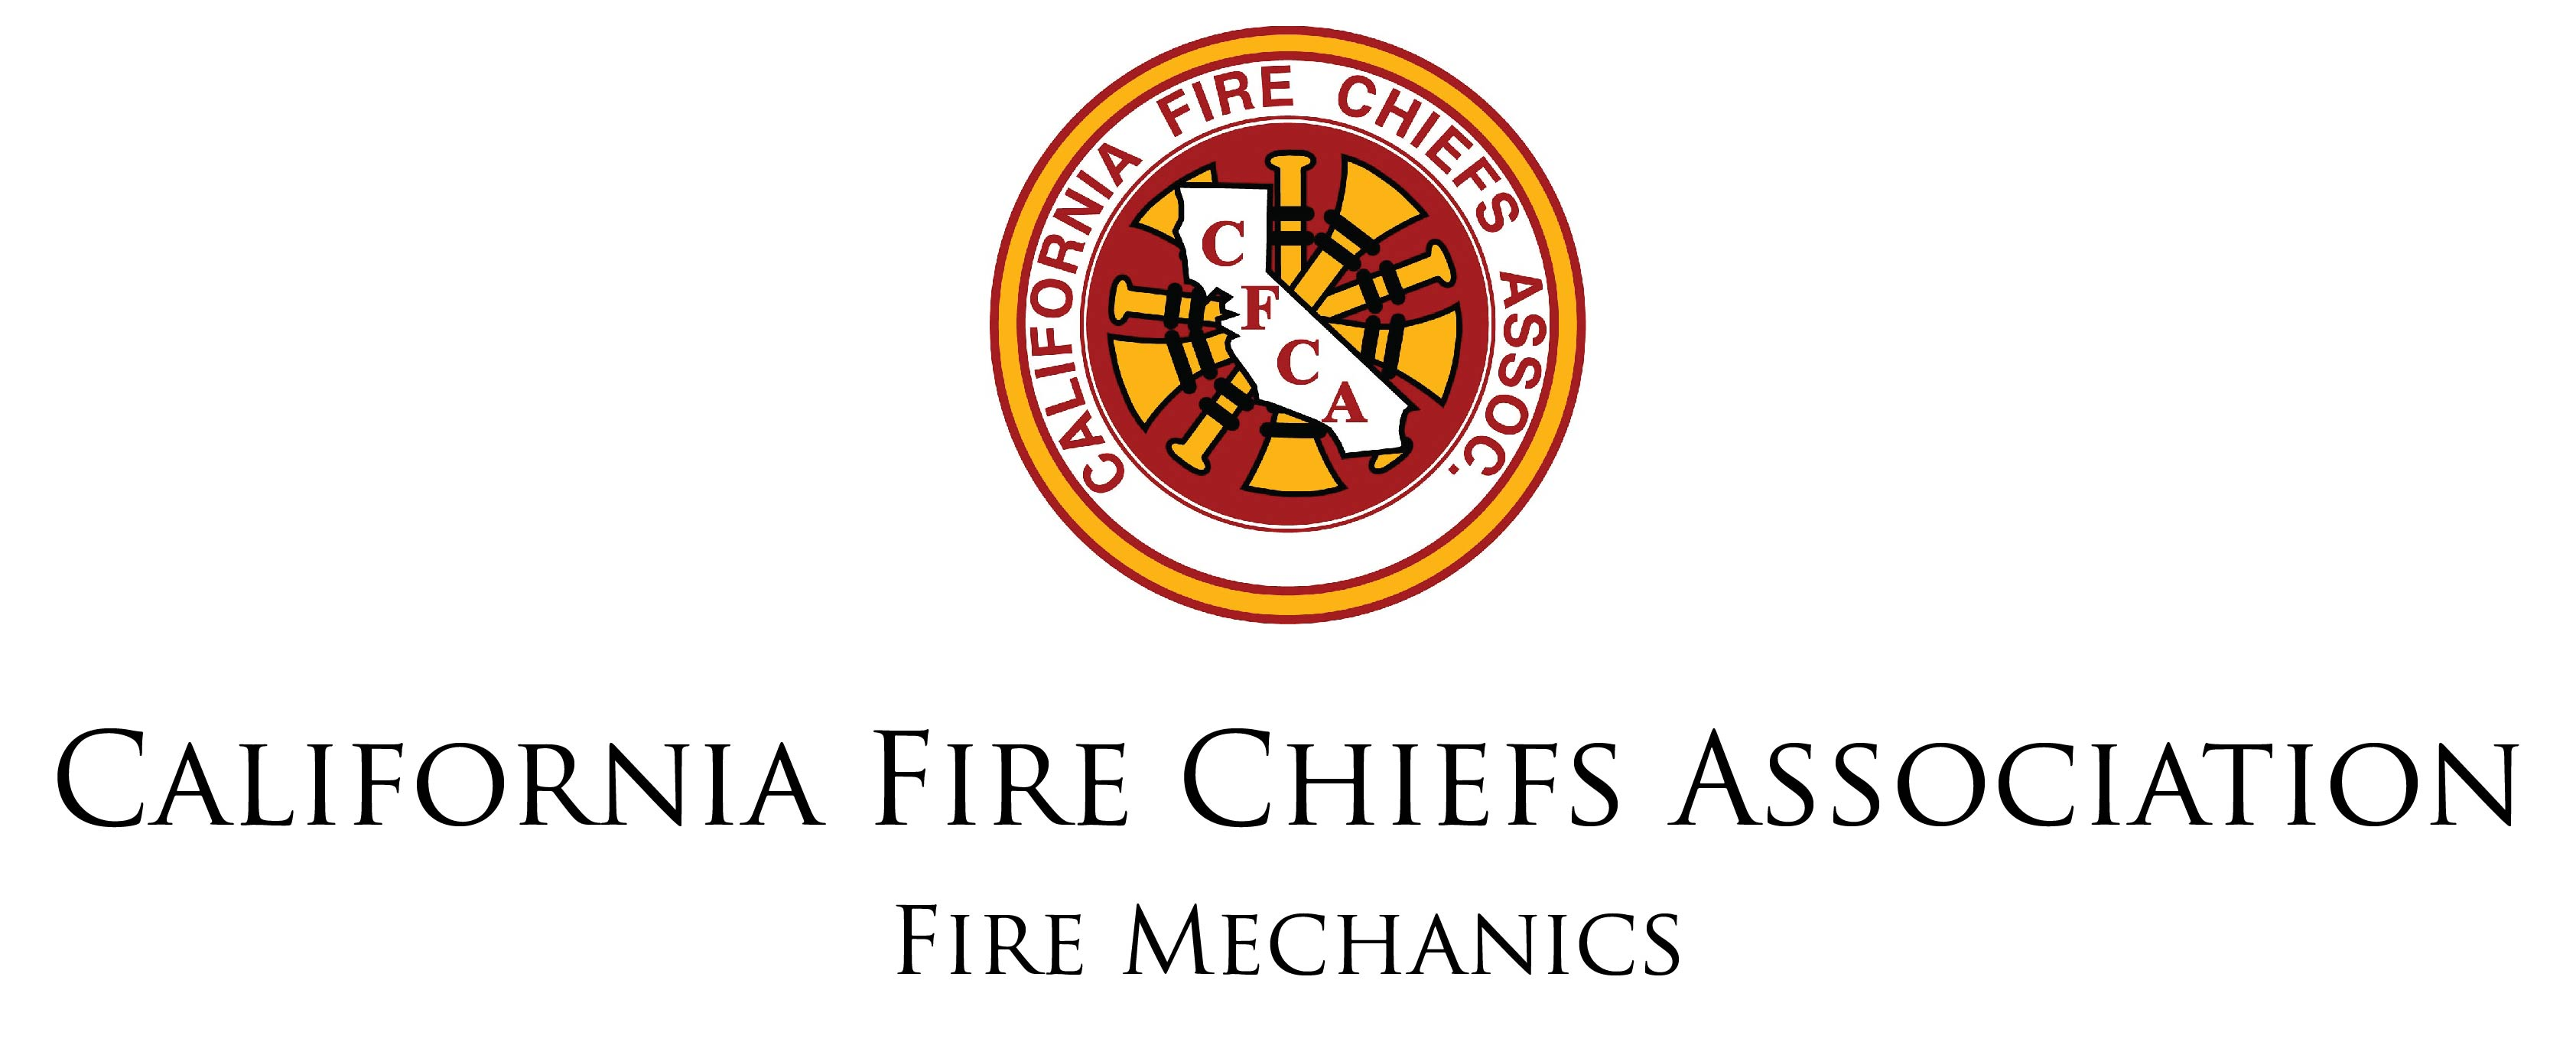 California Fire Chiefs Association - Fire Mechanics